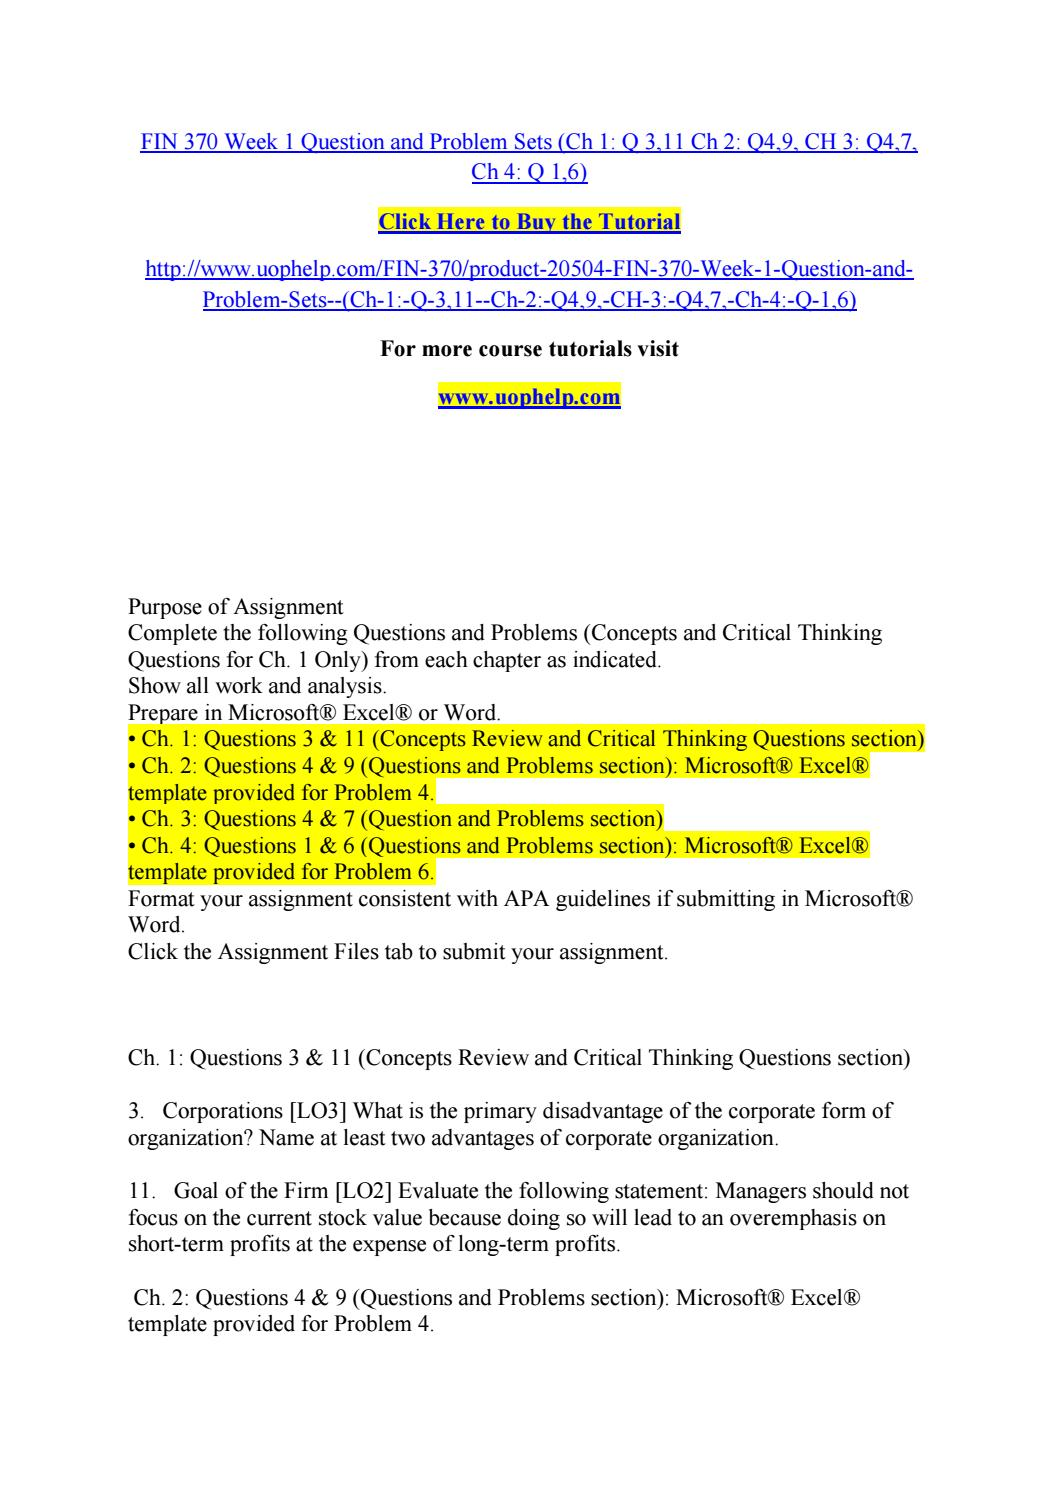 fin 370 chapter 20 problems Description fin 370 finance for business fin 370 week 1 question and problem sets complete the following questions and problems (concepts and critical thinking questions for ch 1 only.